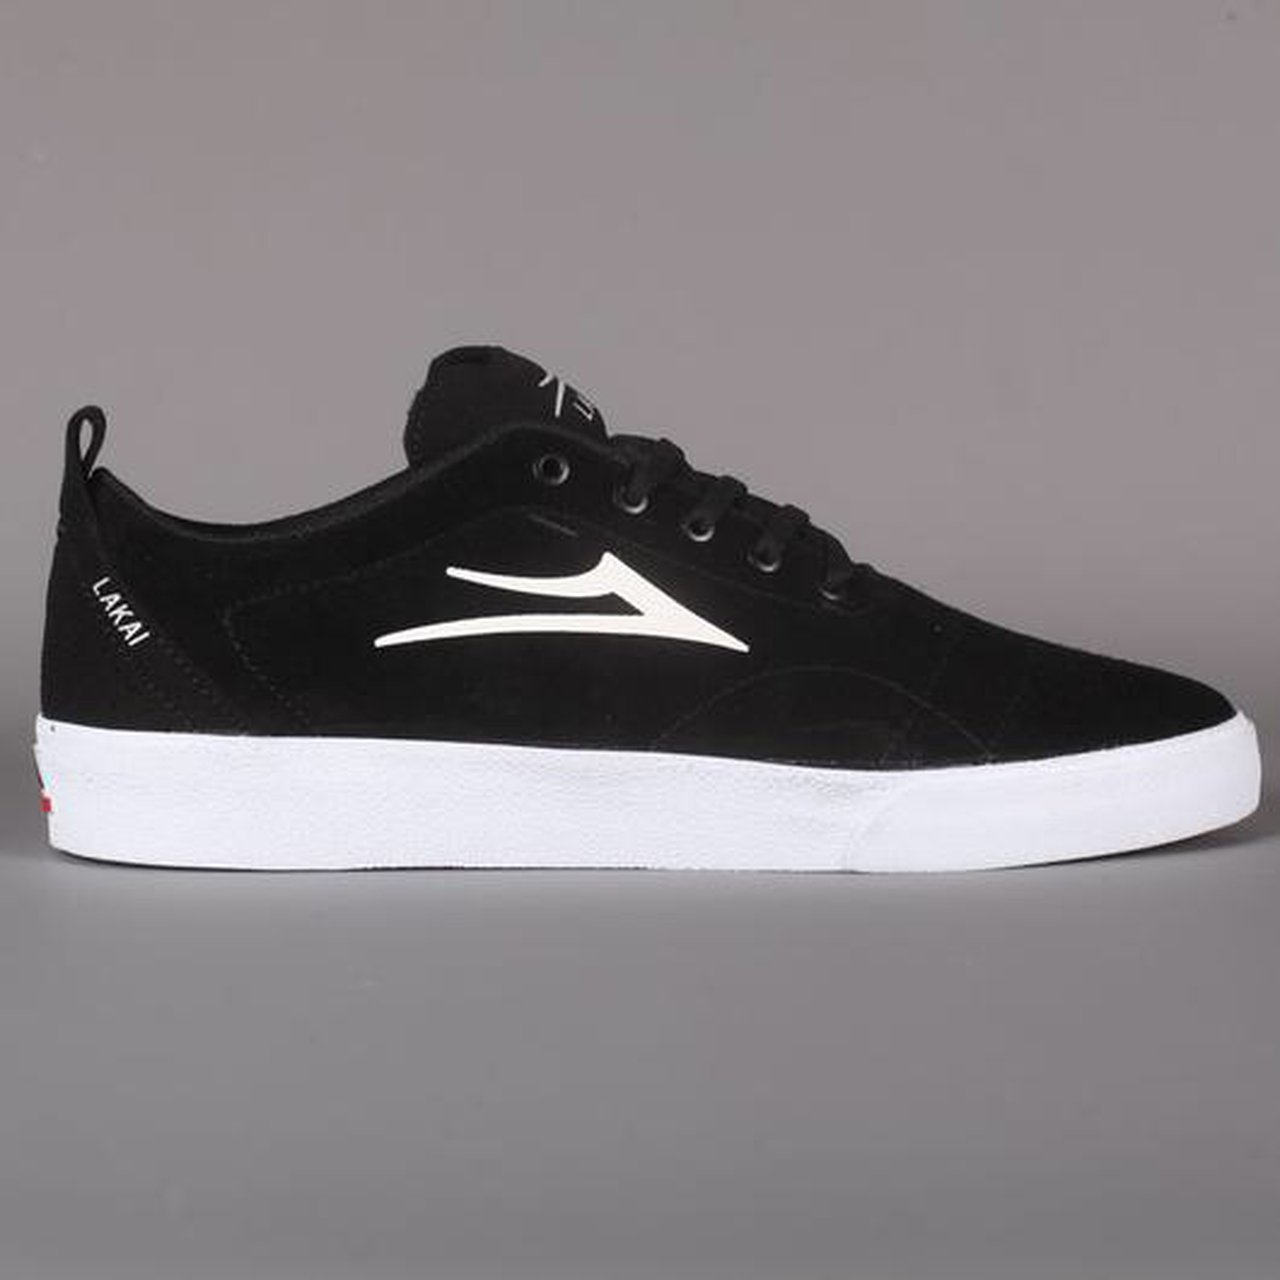 b5c7009f09e Lakai  Bristol  Skate Shoes (Black   White Suede) the skate - Depop